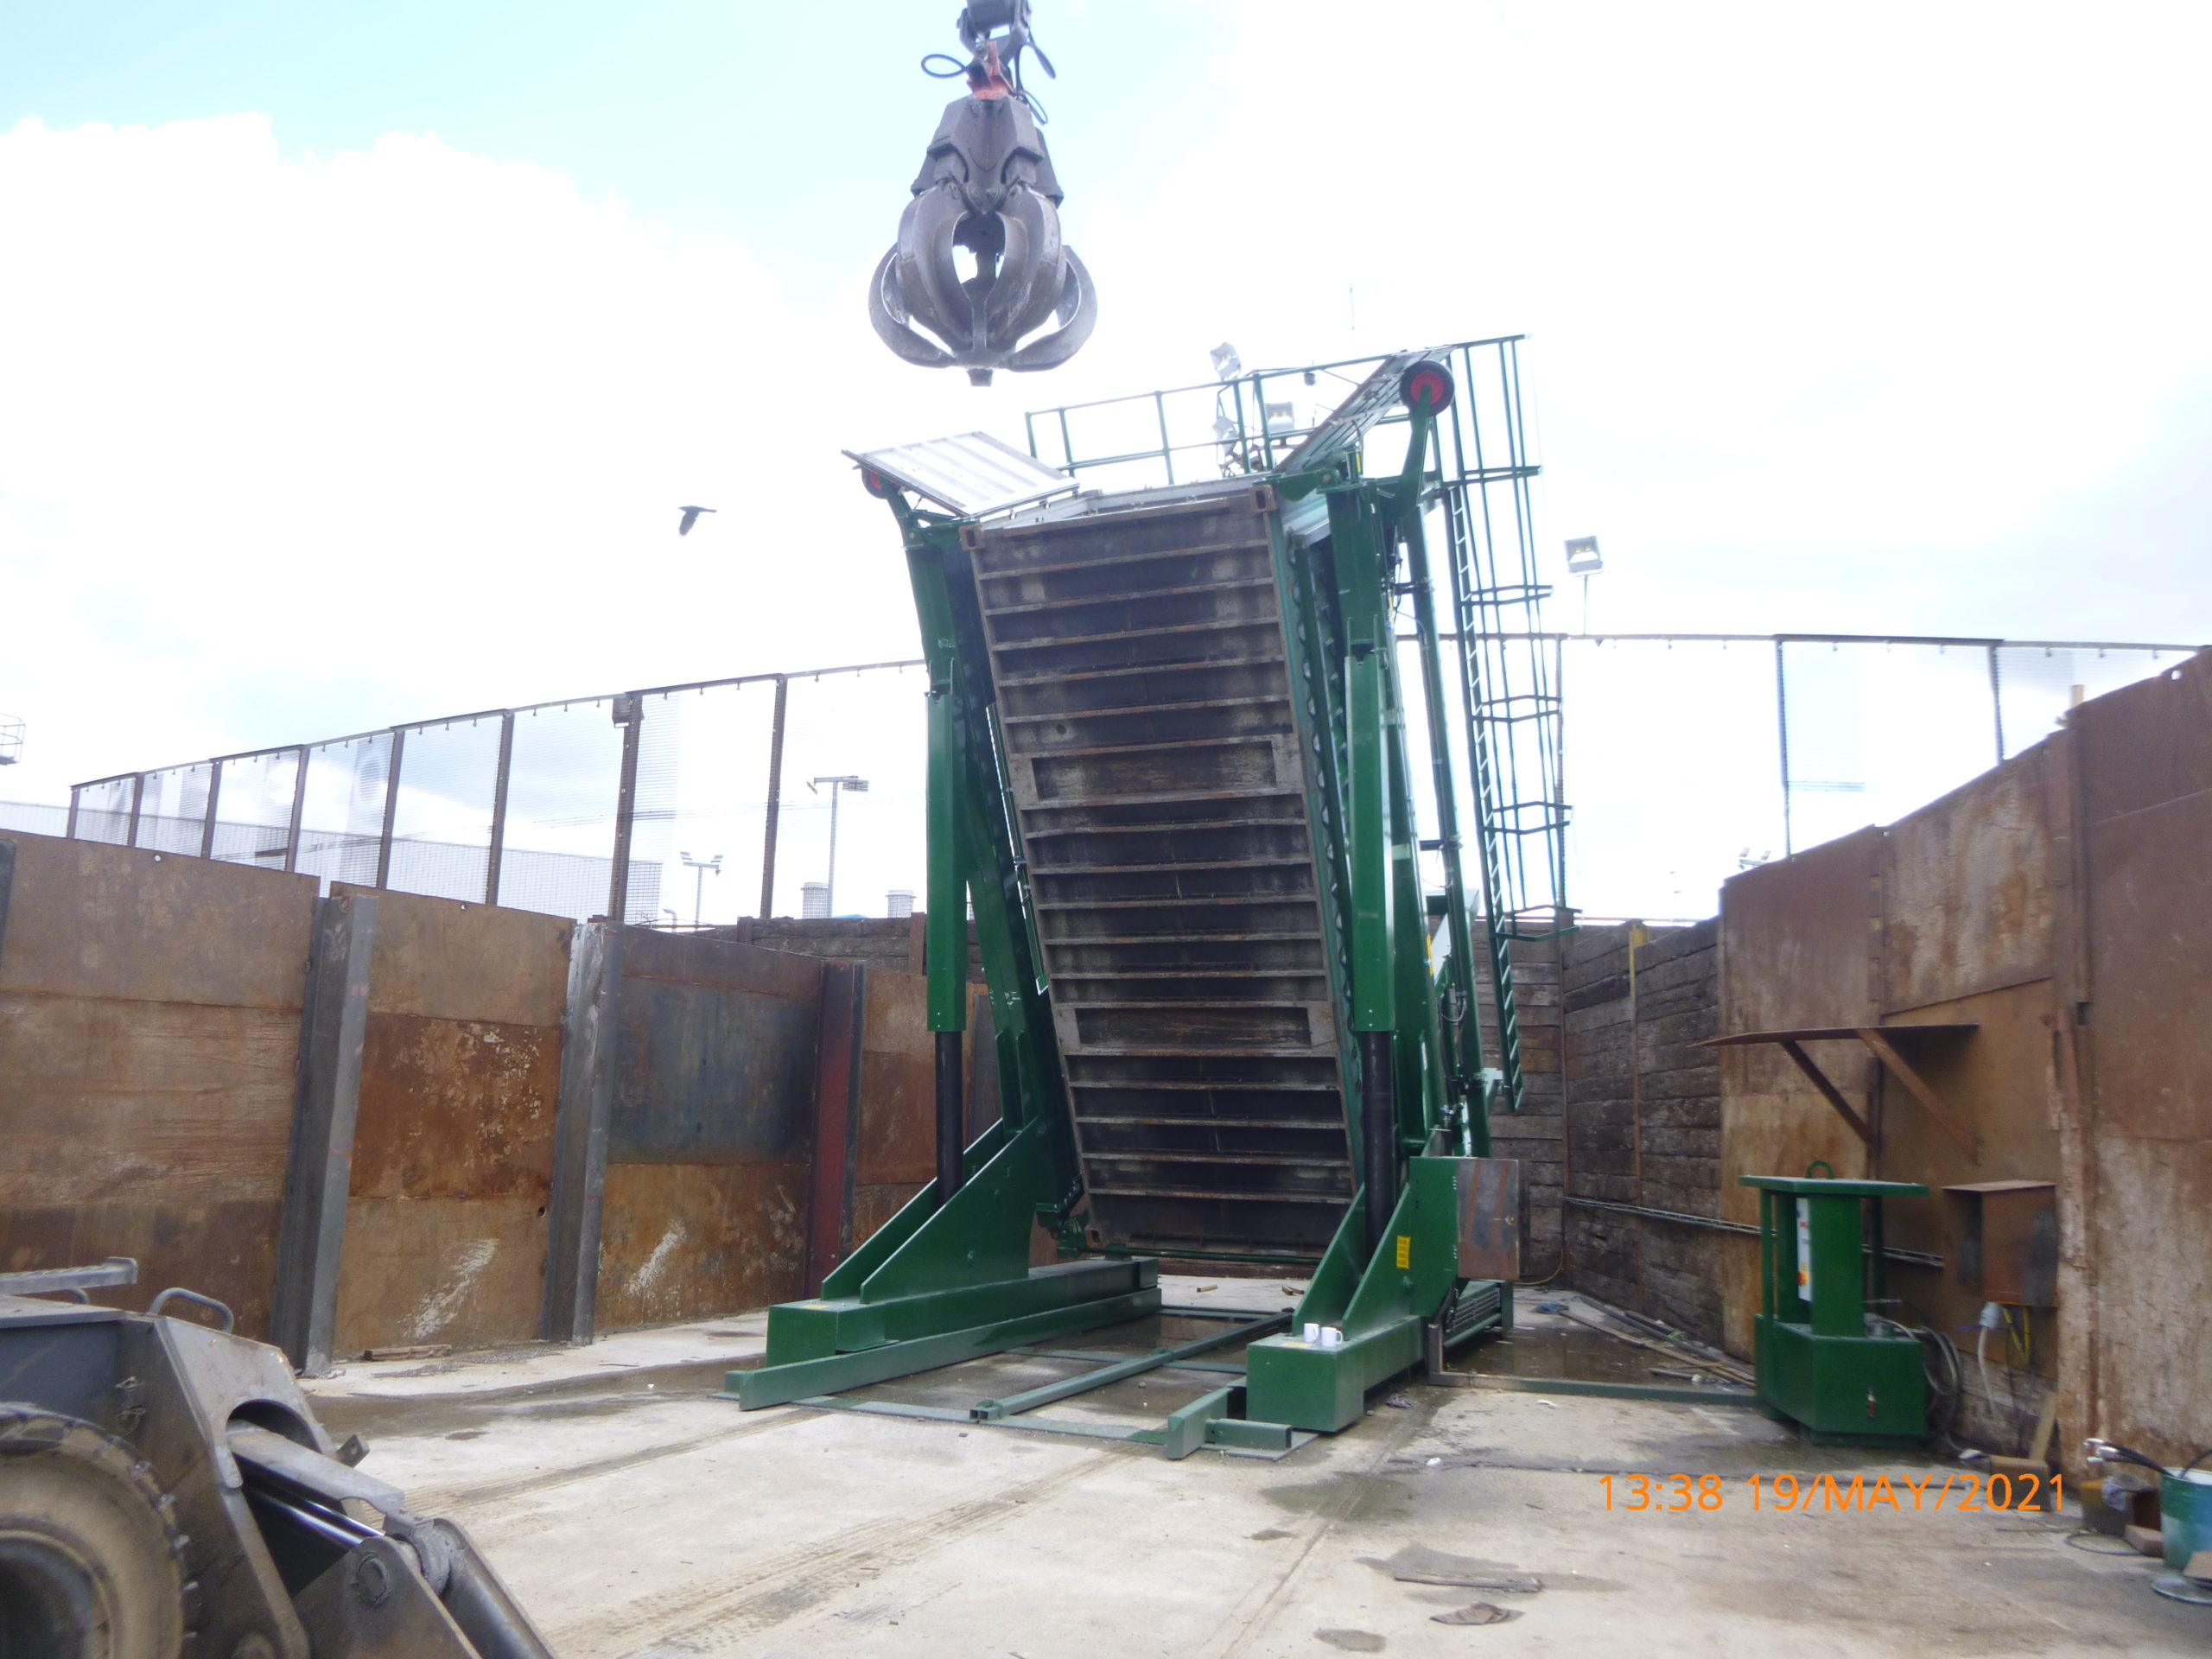 Loading a container with scrap metal